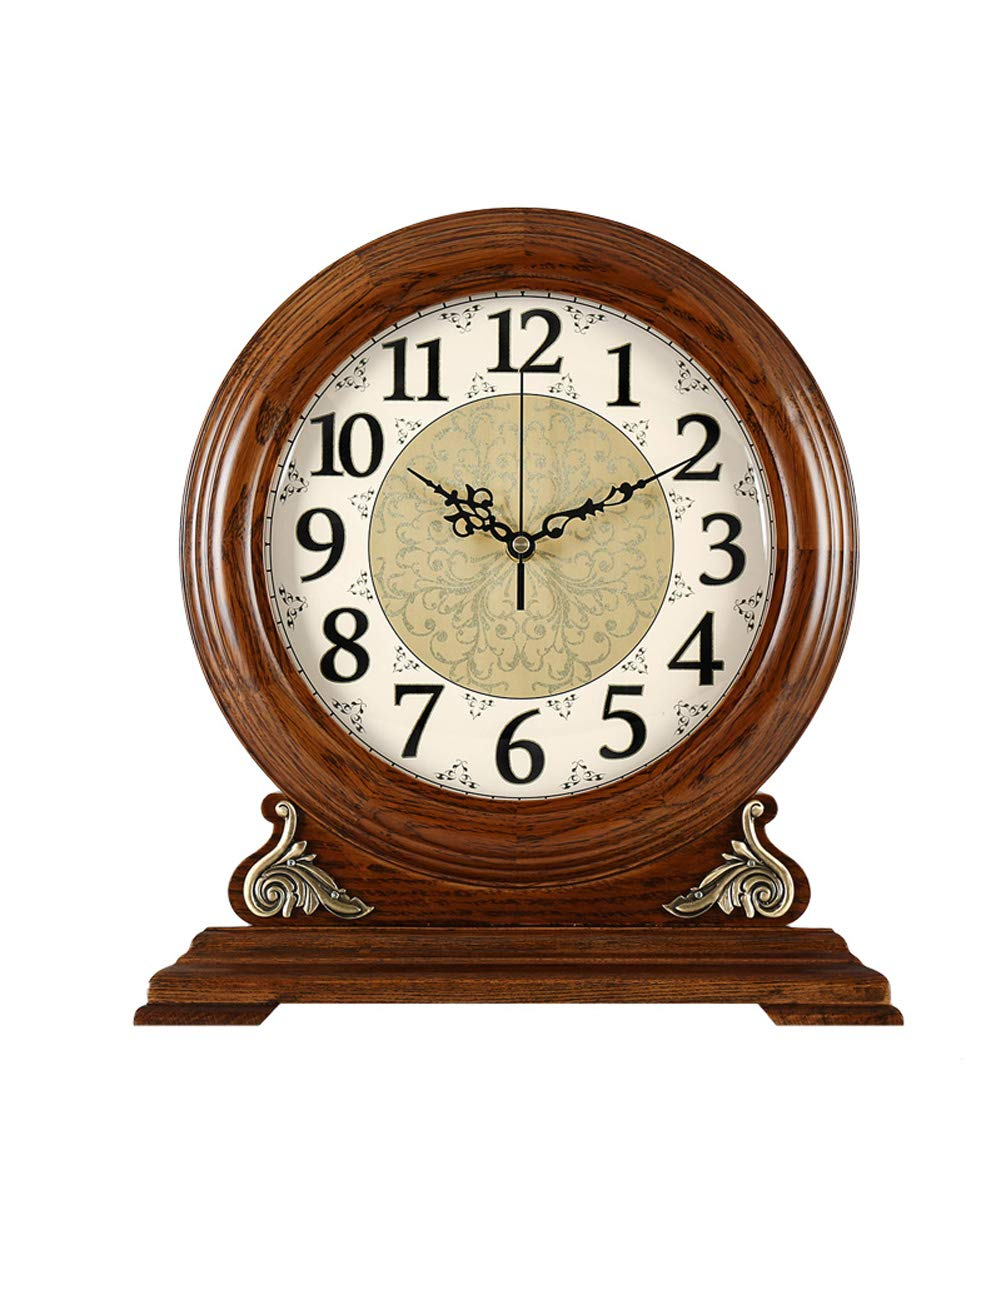 Kcoob Vintage Wooden Table Clock Desk And Shelf Clock Luminous